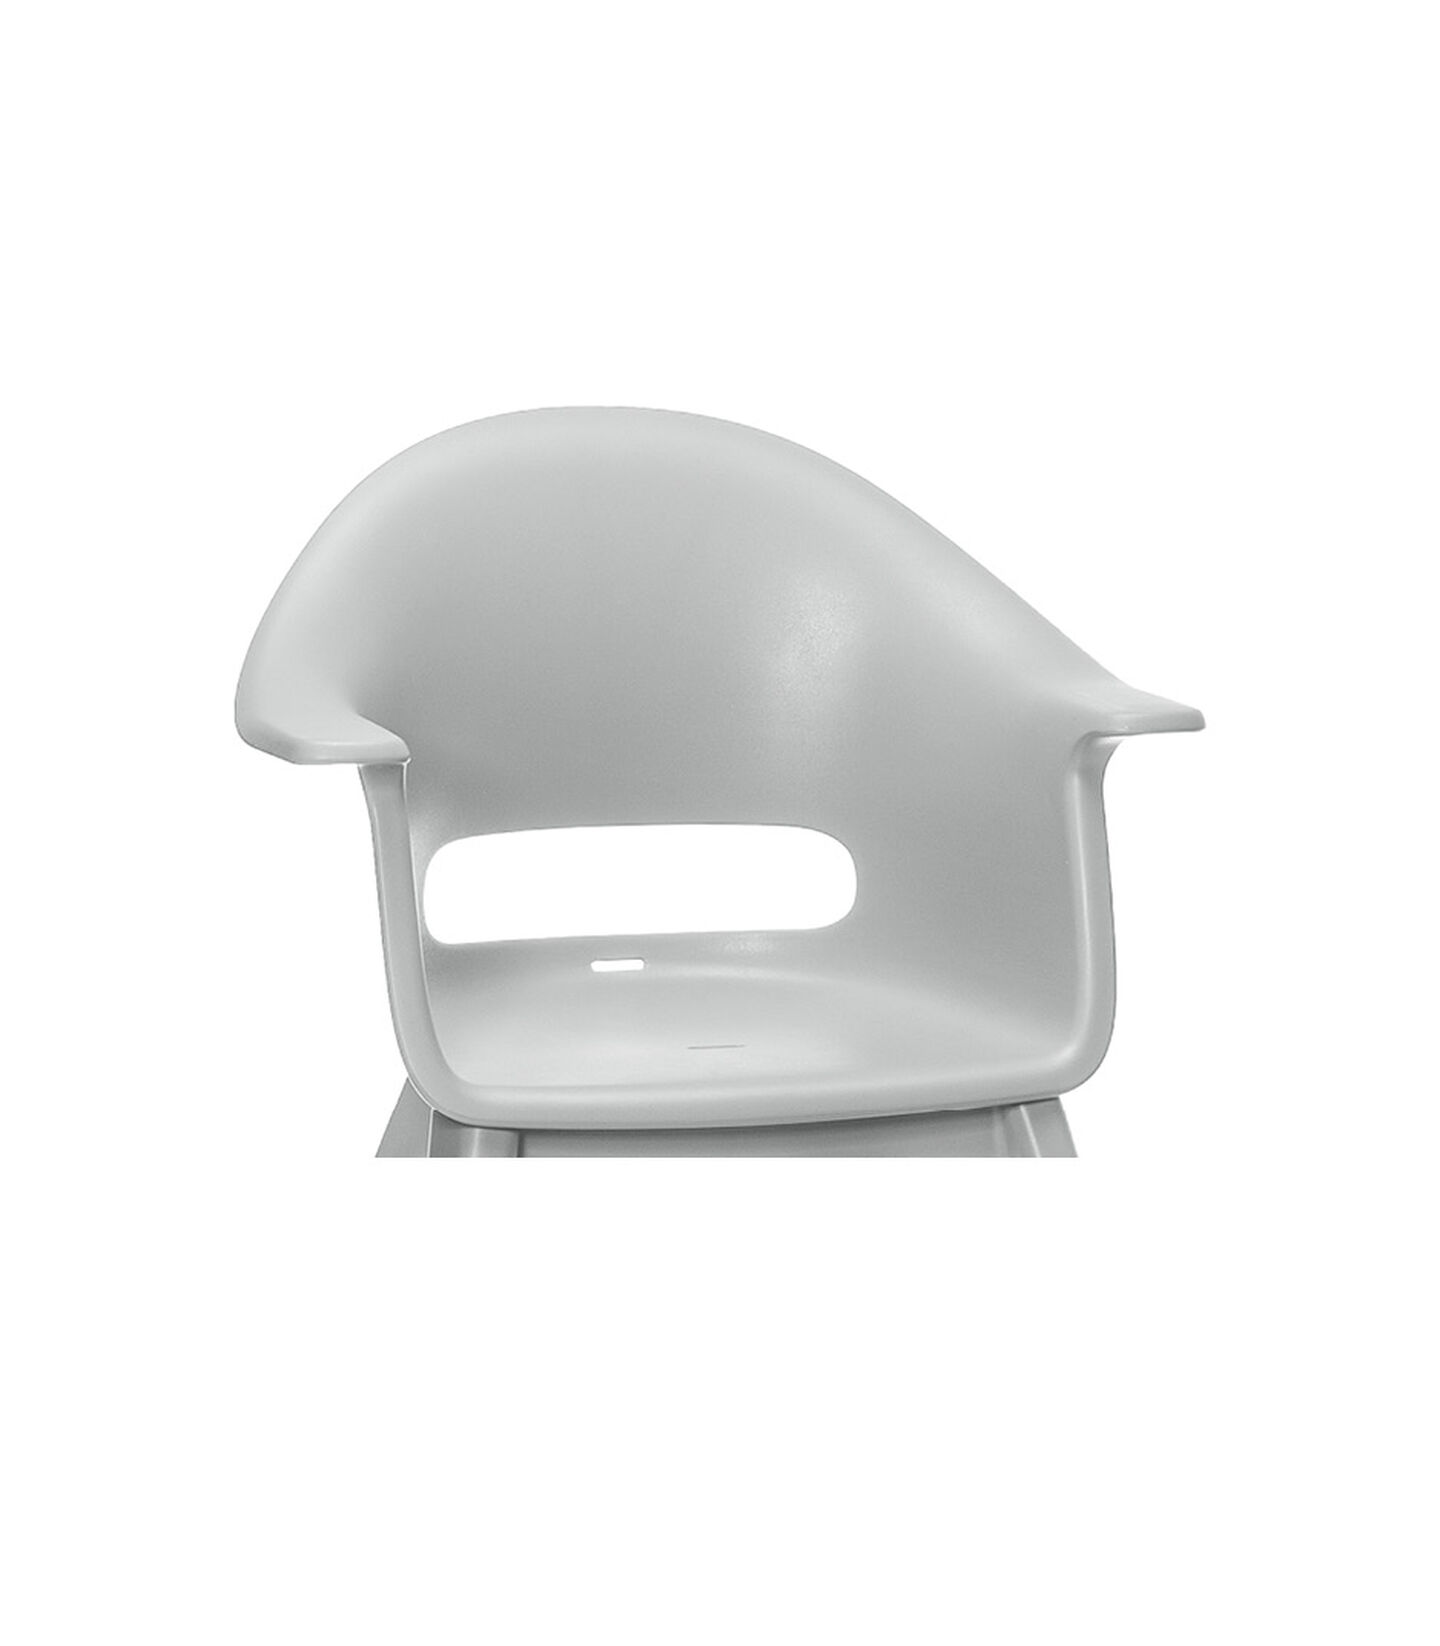 Stokke® Clikk™ Seat Cloud Grey, Cloud Grey, mainview